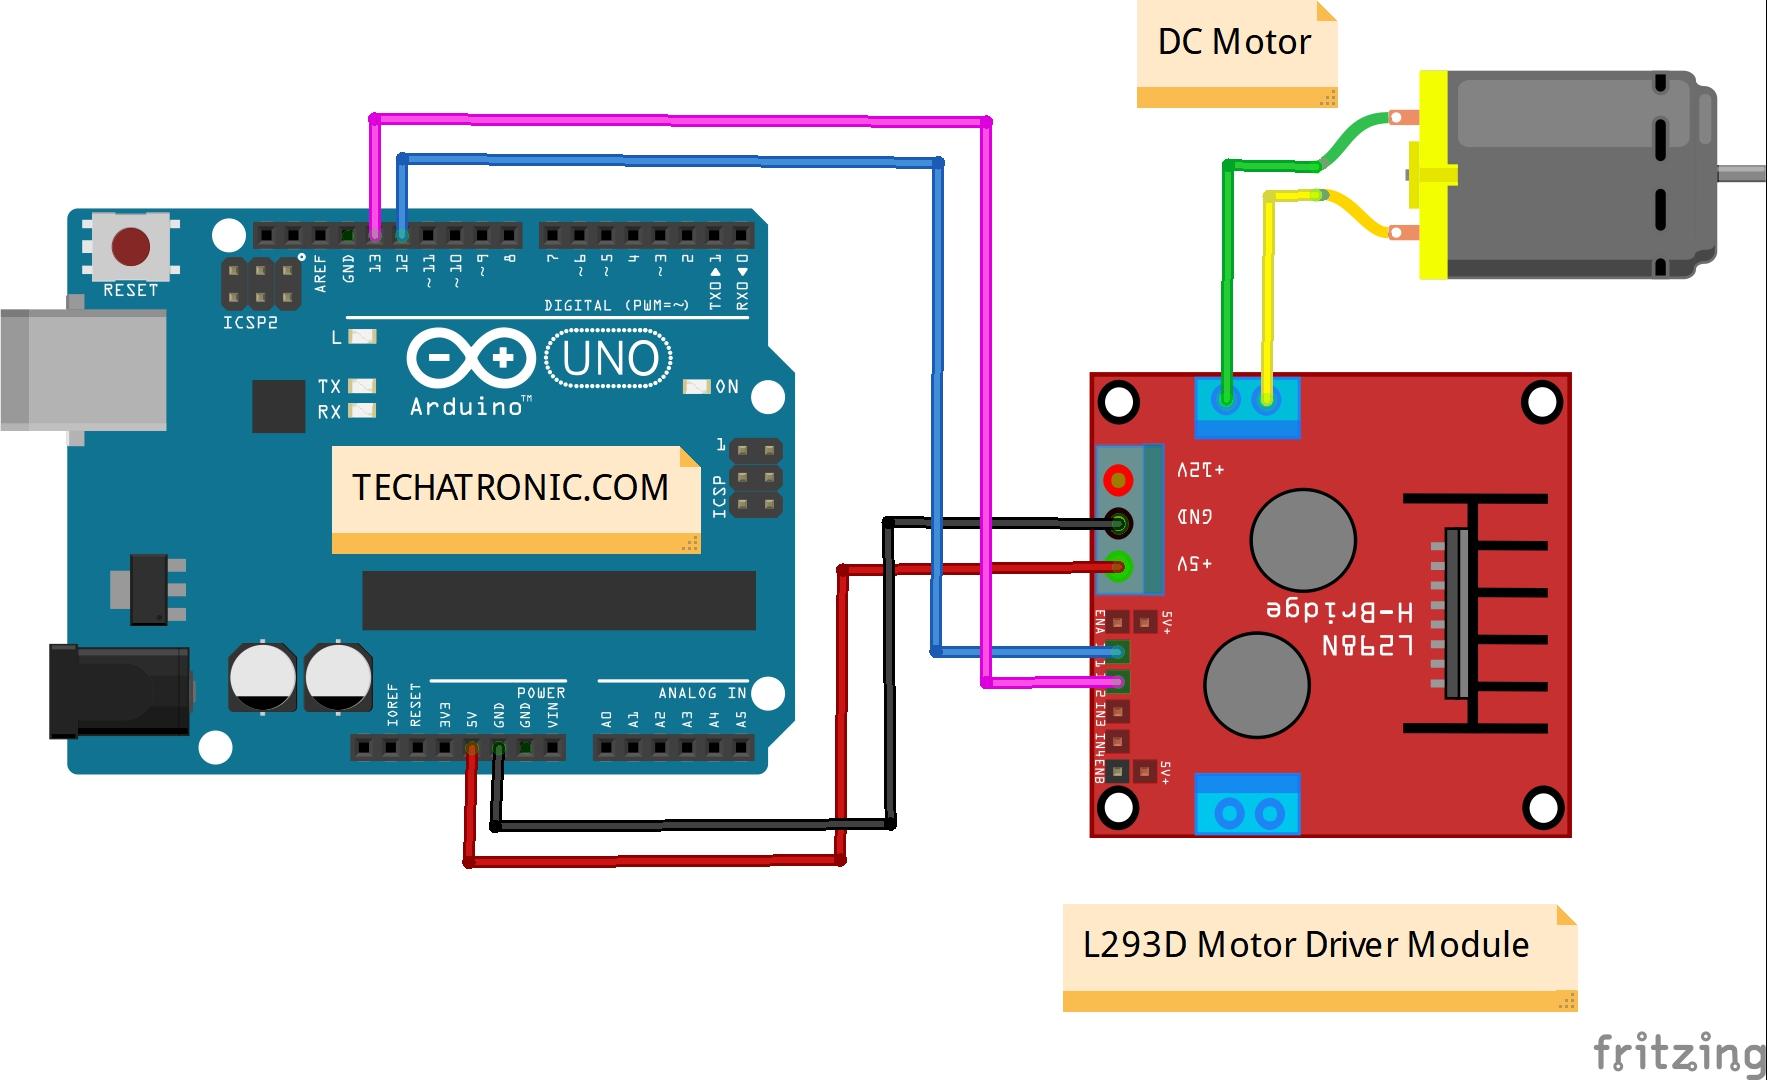 How to control dc motor with Arduino